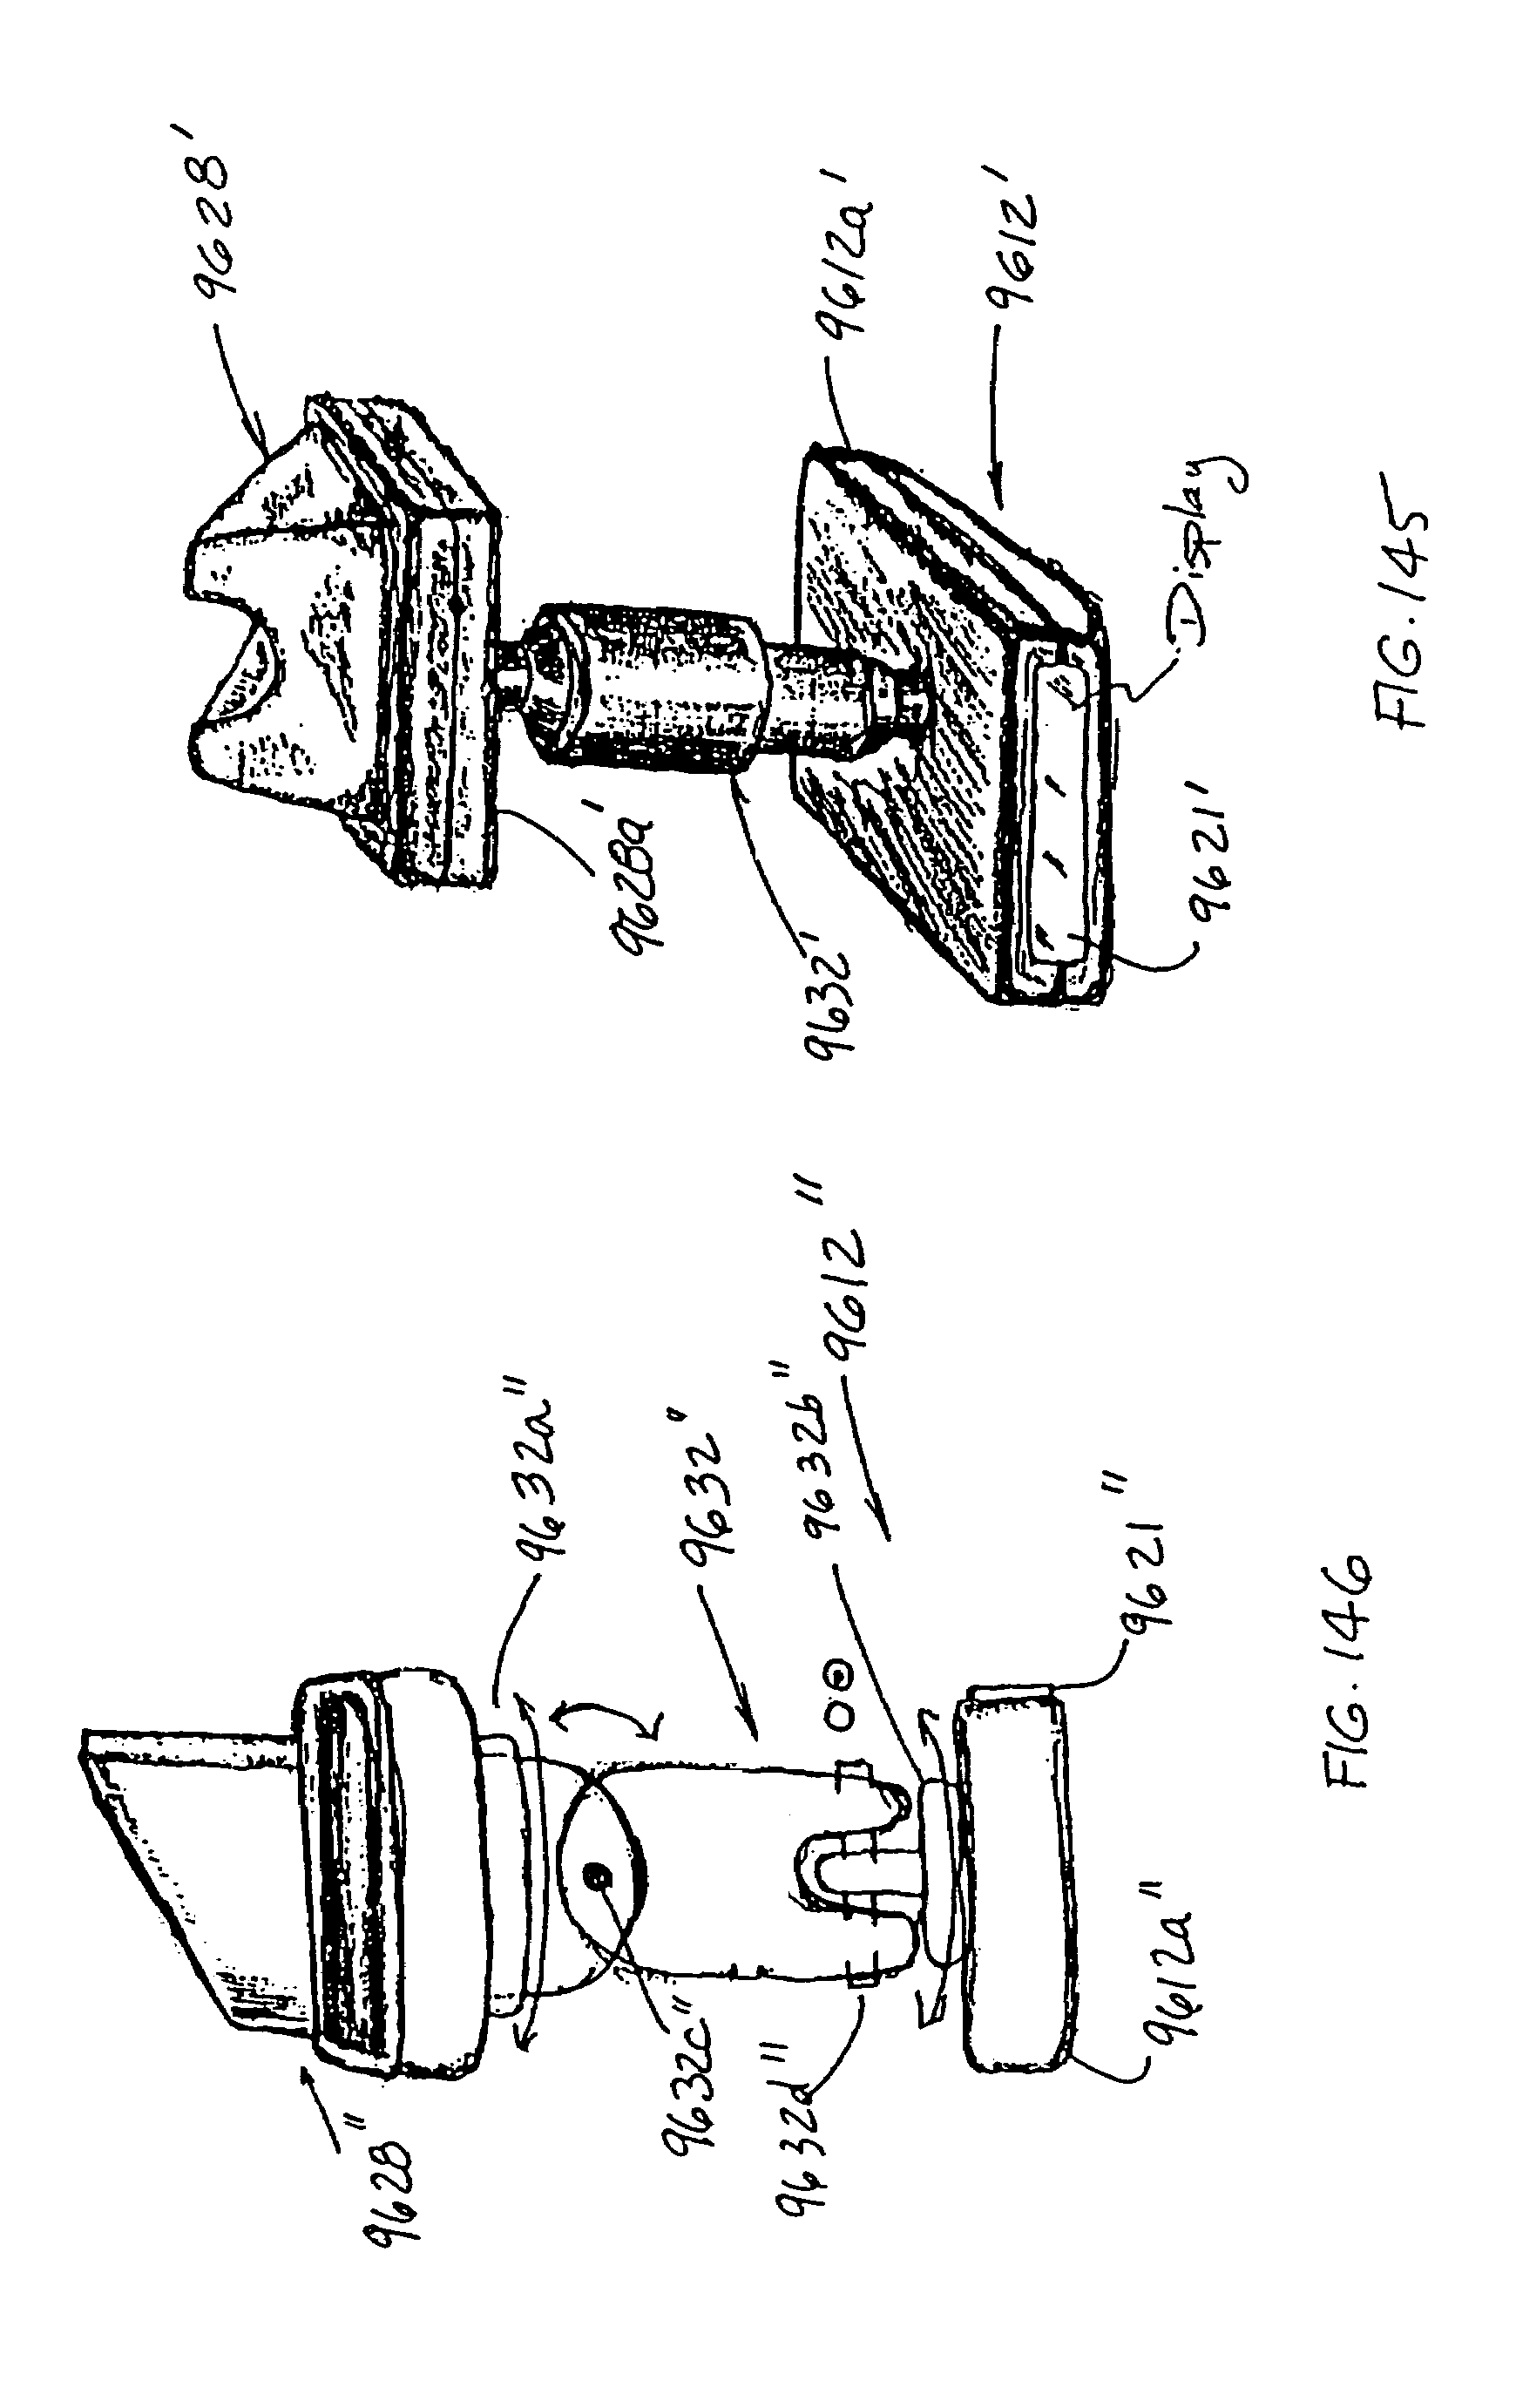 Patent Us 7446650 B2 96 Nissan Pickup Ignition Wiring Diagram Also Adjustable Fuel Pressure Images